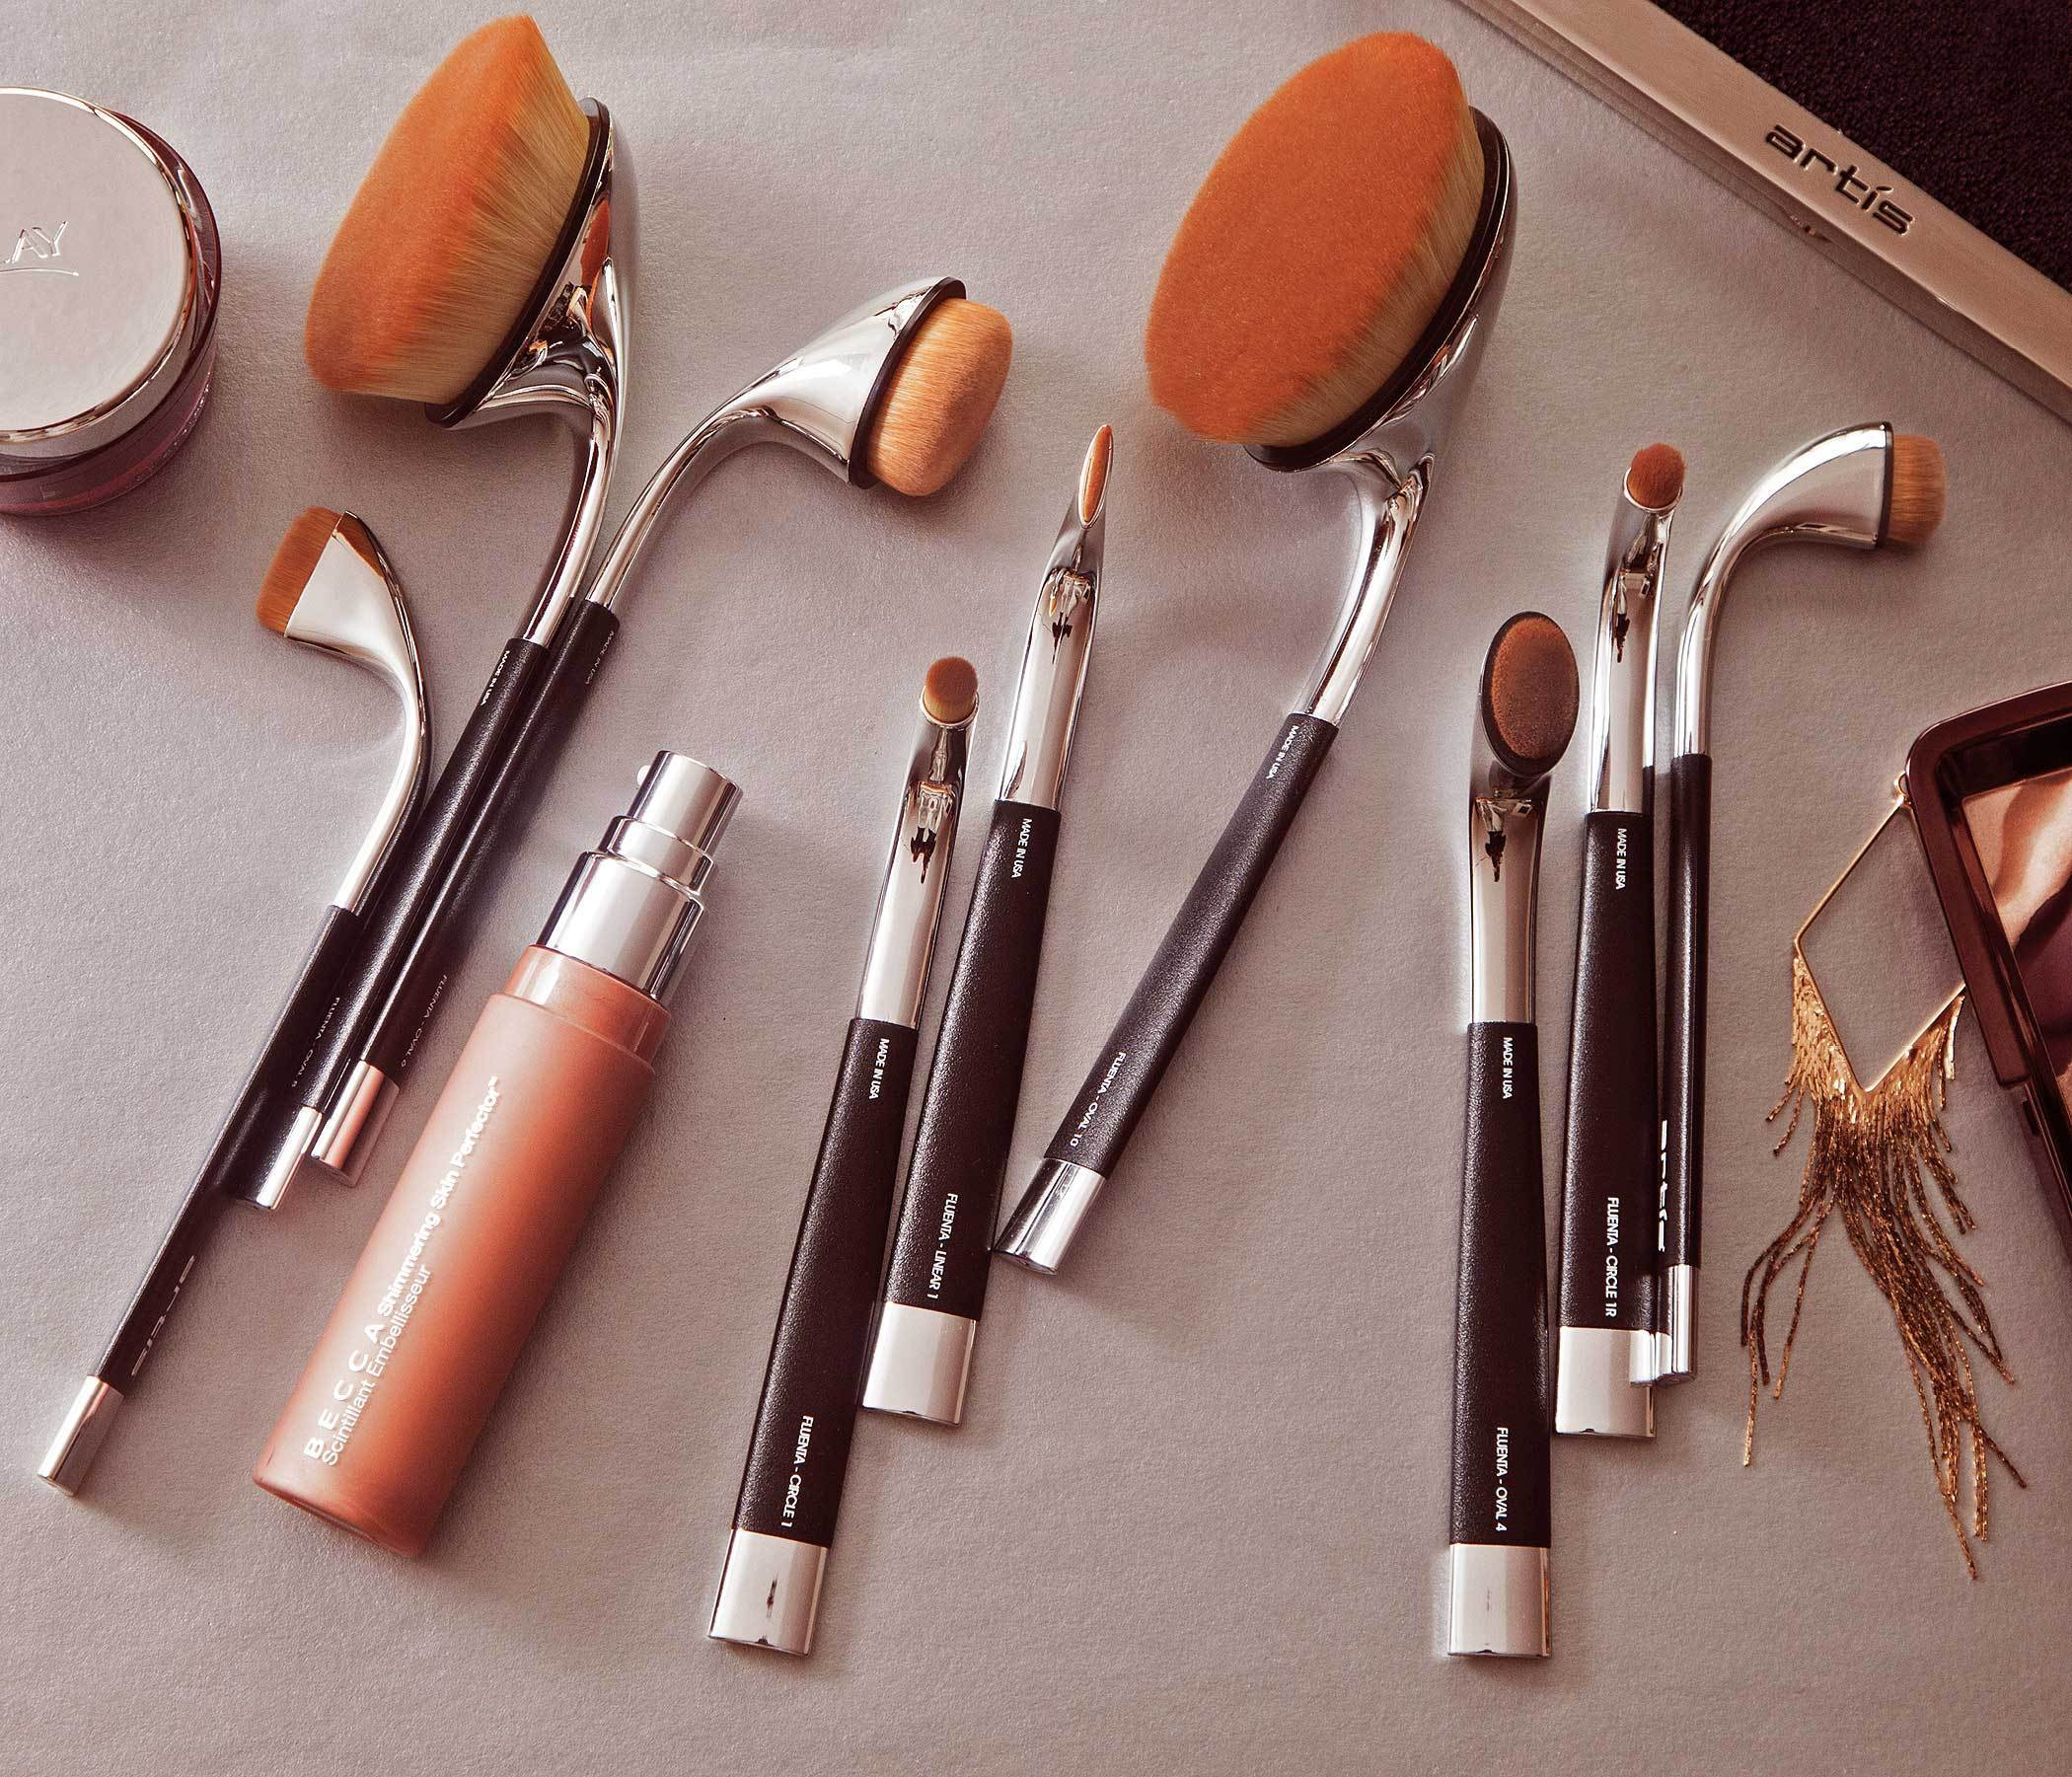 ARTIS BRUSH Fluenta 9 Brush Set / Fluenta 9本 セット